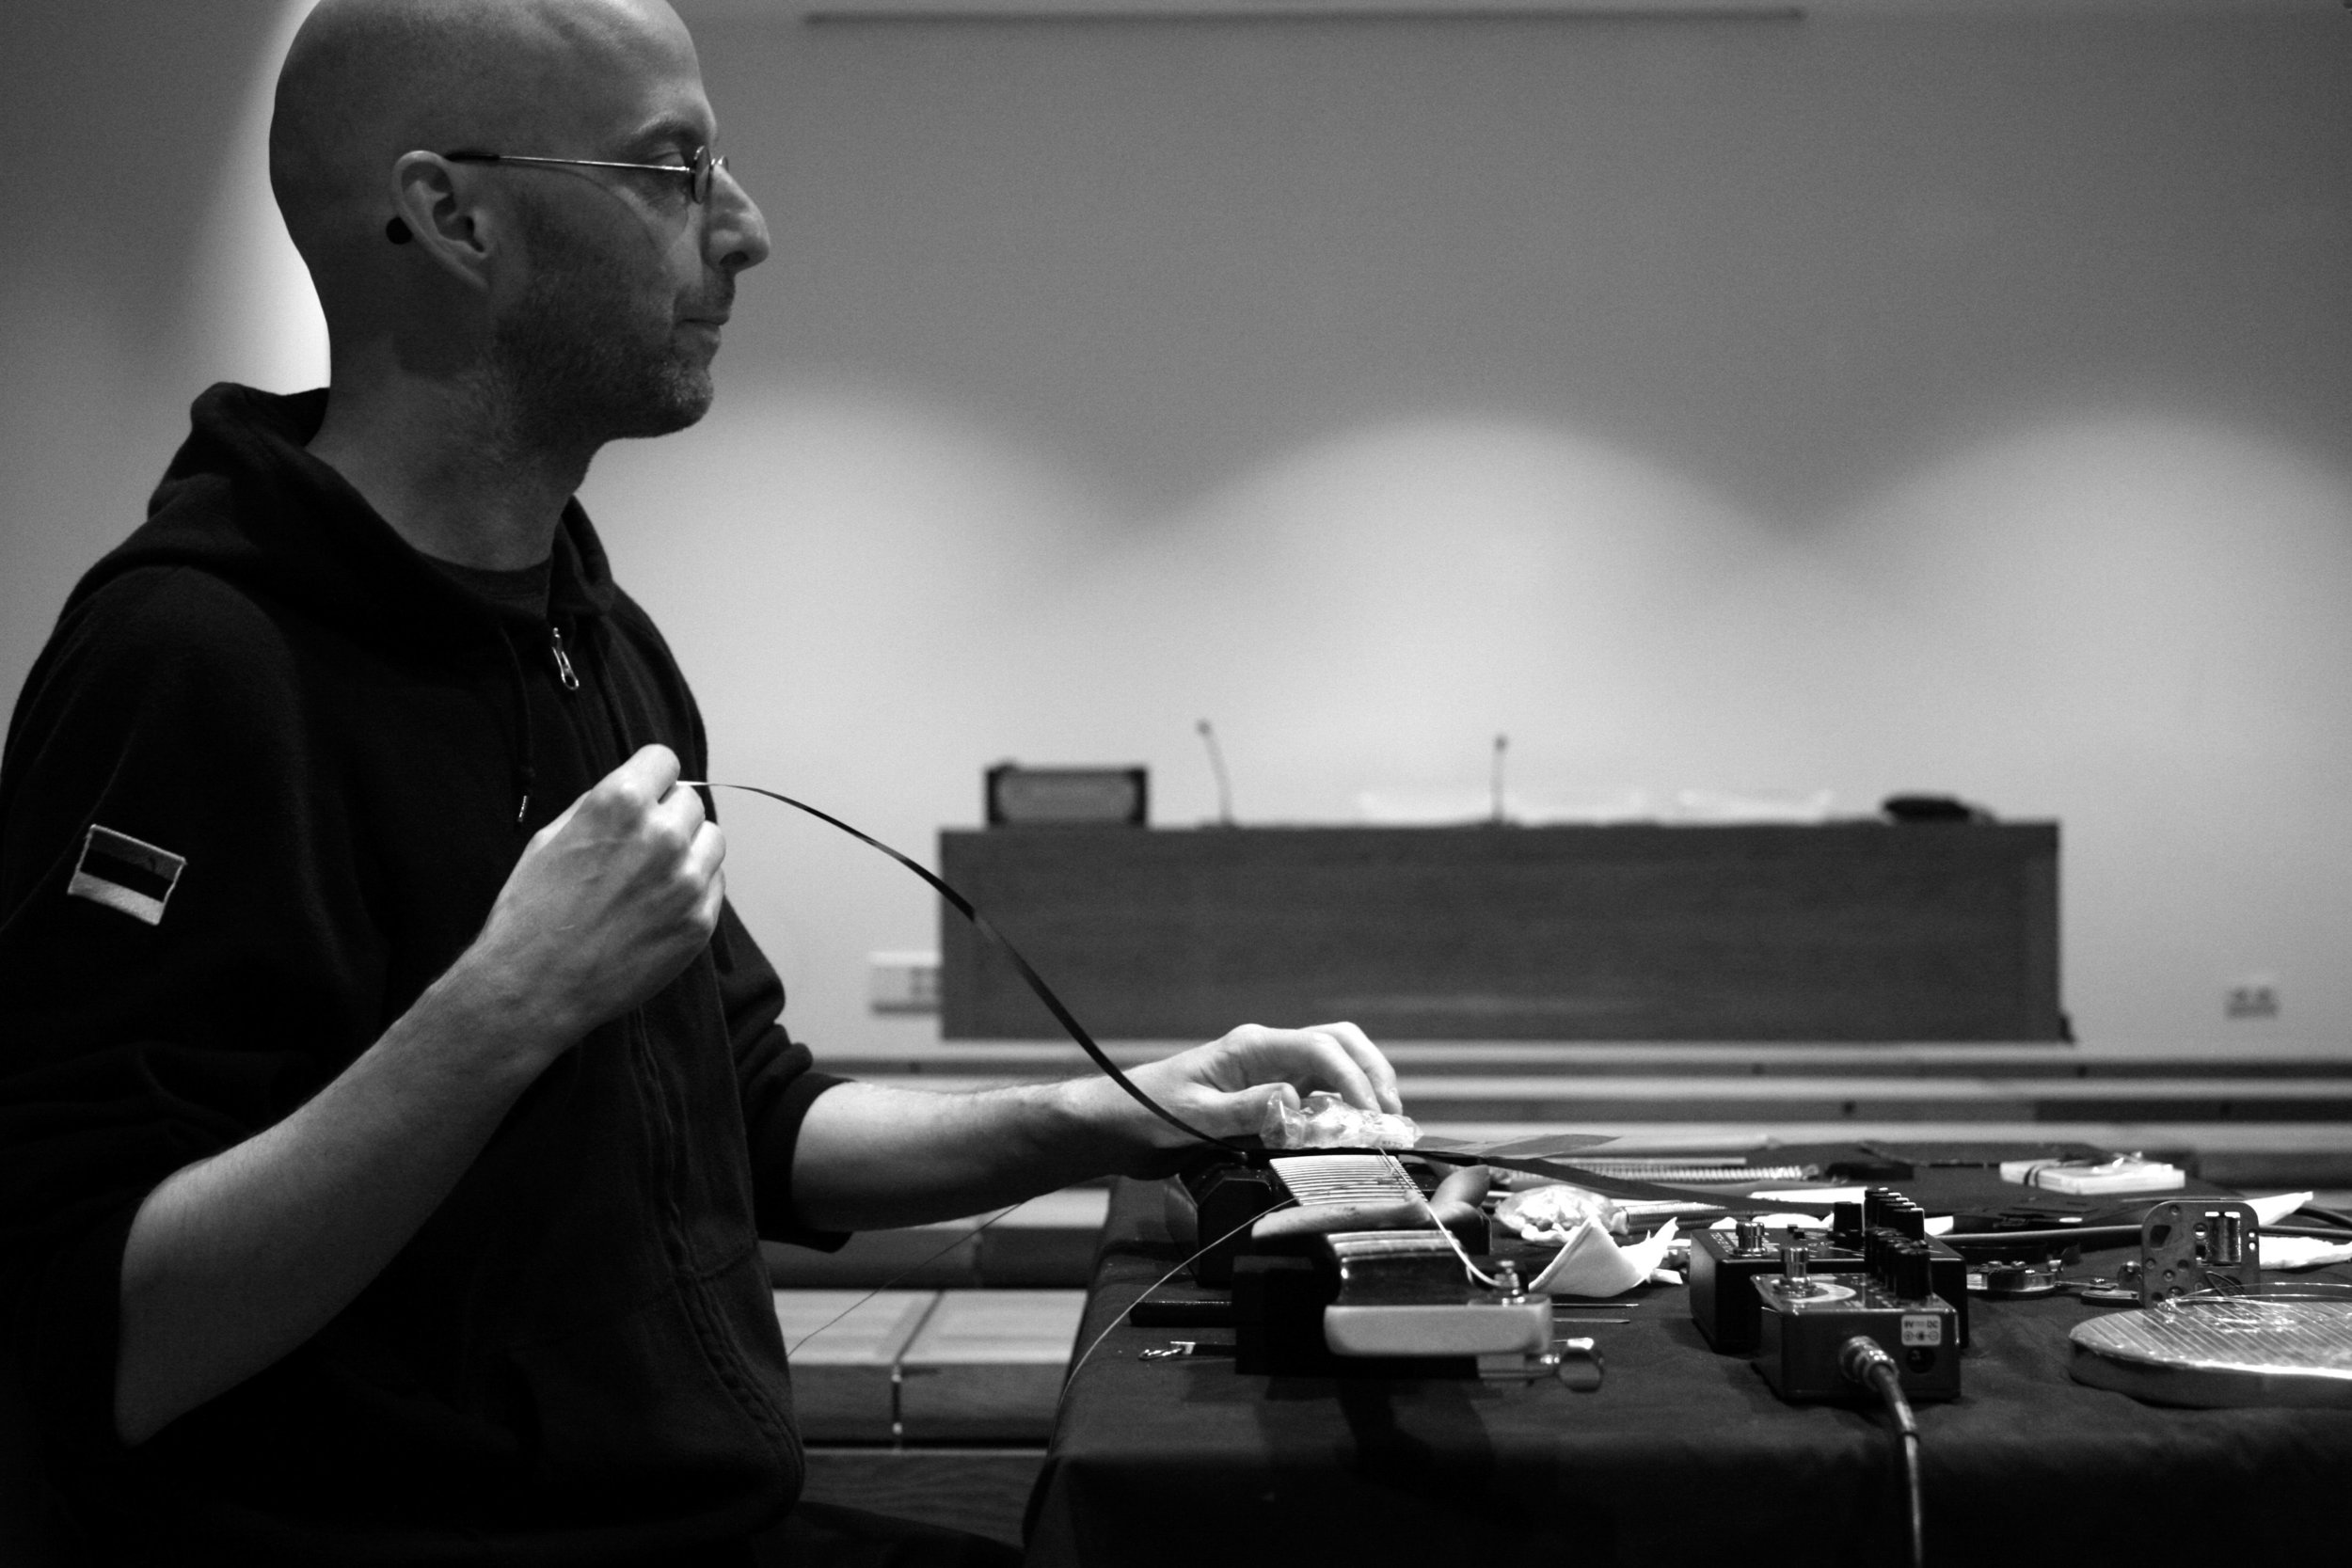 Tim Olive(Kobe JP) - The music of Tim Olive arises from collaboration with fellow musicians/sound artists, collaboration with physical and temporal setting, and collaboration with those involved in the act of listening. Using simple materials (including magnetic pickups, steel strings, tuning forks, metal strips, hand-wound motor mechanisms, magnetic tape, dental floss and analog electronics), Olive's work is predicated on the interplay of the human with material/time/space, and the uniqueness, intensity and unrepeatability that lives in each performing and/or recording situation.He is interested in music as a social activity, as a way of creating community, a way of countering the forces which lead to an increasing atomization of contemporary life; music as a felt experience rather than as a concept or a theory.A Canadian residing in Kobe, Japan, Olive has released music on Japanese, European and North American labels, with Jeff Allport, Cristian Alvear, Pascal Battus, Alfredo Costa Monteiro, Samuel Dunscombe, Nick Hoffman, Anne-F Jacques, Jin Sangtae, Jason Kahn, Takahiro Kawaguchi, Yukinori Kikuchi, Francisco Meirino, Katsura Mouri, Takuji Naka, Bunsho Nishikawa, Makoto Oshiro, Ben Owen, Horacio Pollard and Fritz Welch.Olive has performed/recorded in Asia, Australia, Europe and North America, with the recording collaborators listed above, as well as with Akiyama Tetuzi, Maria Chavez, Che Chen, Kelly Churko, crys cole, Joe Foster, Haco, Hong Chulki, Bonnie Jones, Nicola Hein, Richard Kamerman, Kostis Kilymis, Siew-Wai Kok, Madoka Kouno, Tomasz Krakowiak, Fangyi Liu, Cal Lyall, Toshimaru Nakamura, James Rushford, Carl Stone, Nate Wooley, Jared Xu and Yan Jun.In addition to organizing events in Japan, Olive runs the label 845 Audio.Listen: Tim Olive